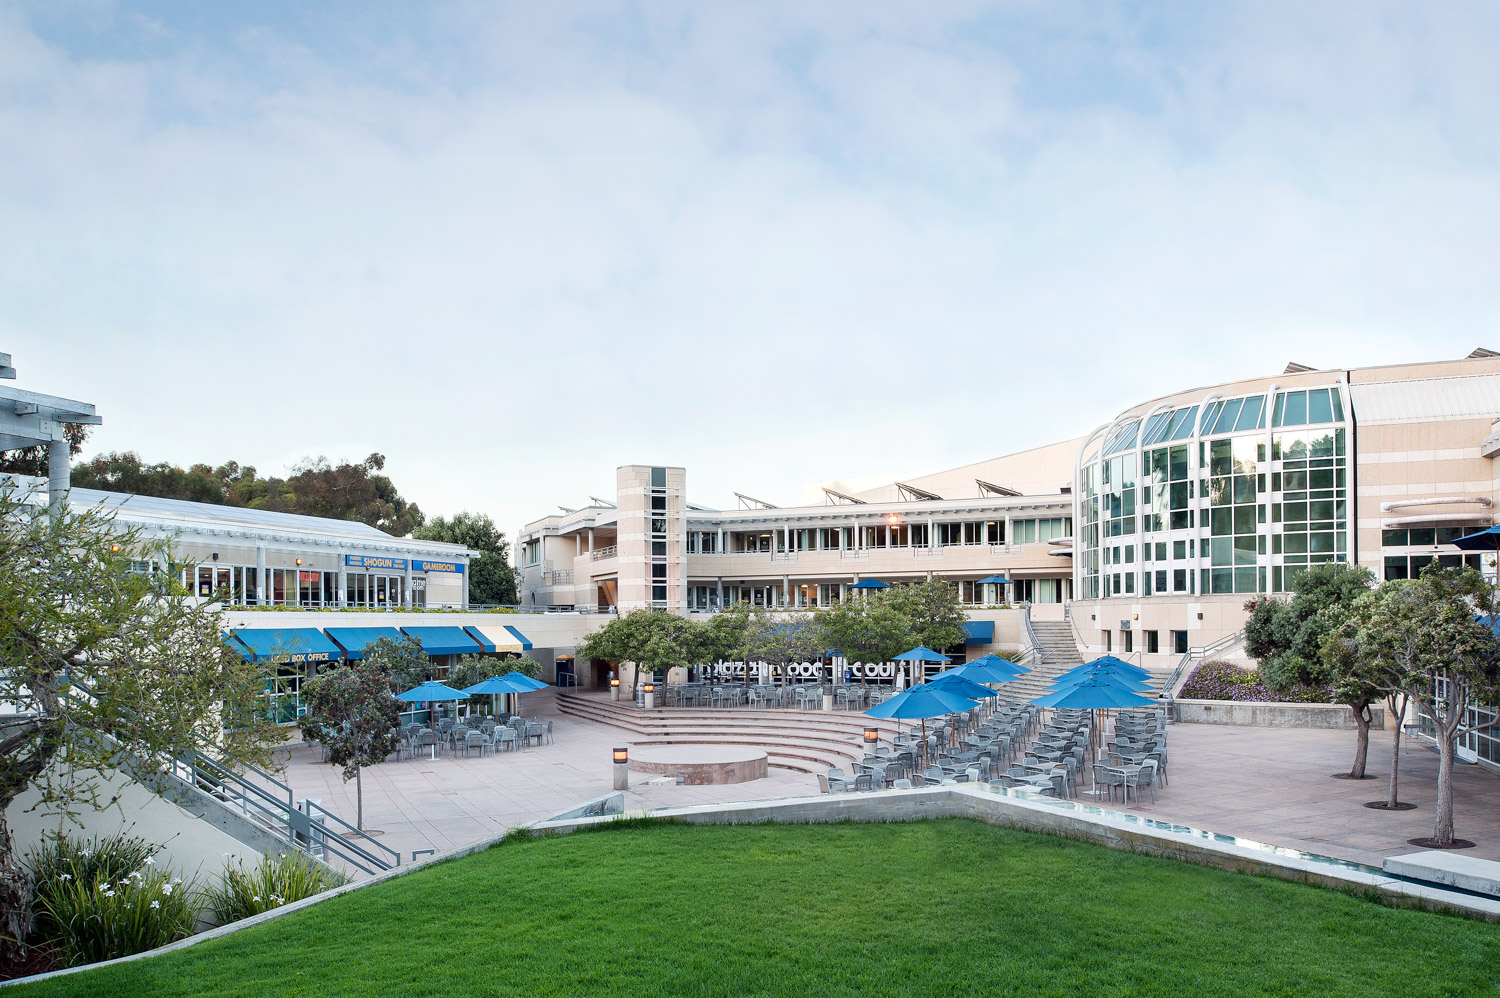 UCSD campus photography, University architecture photographer, University California San Diego, commercial photographer